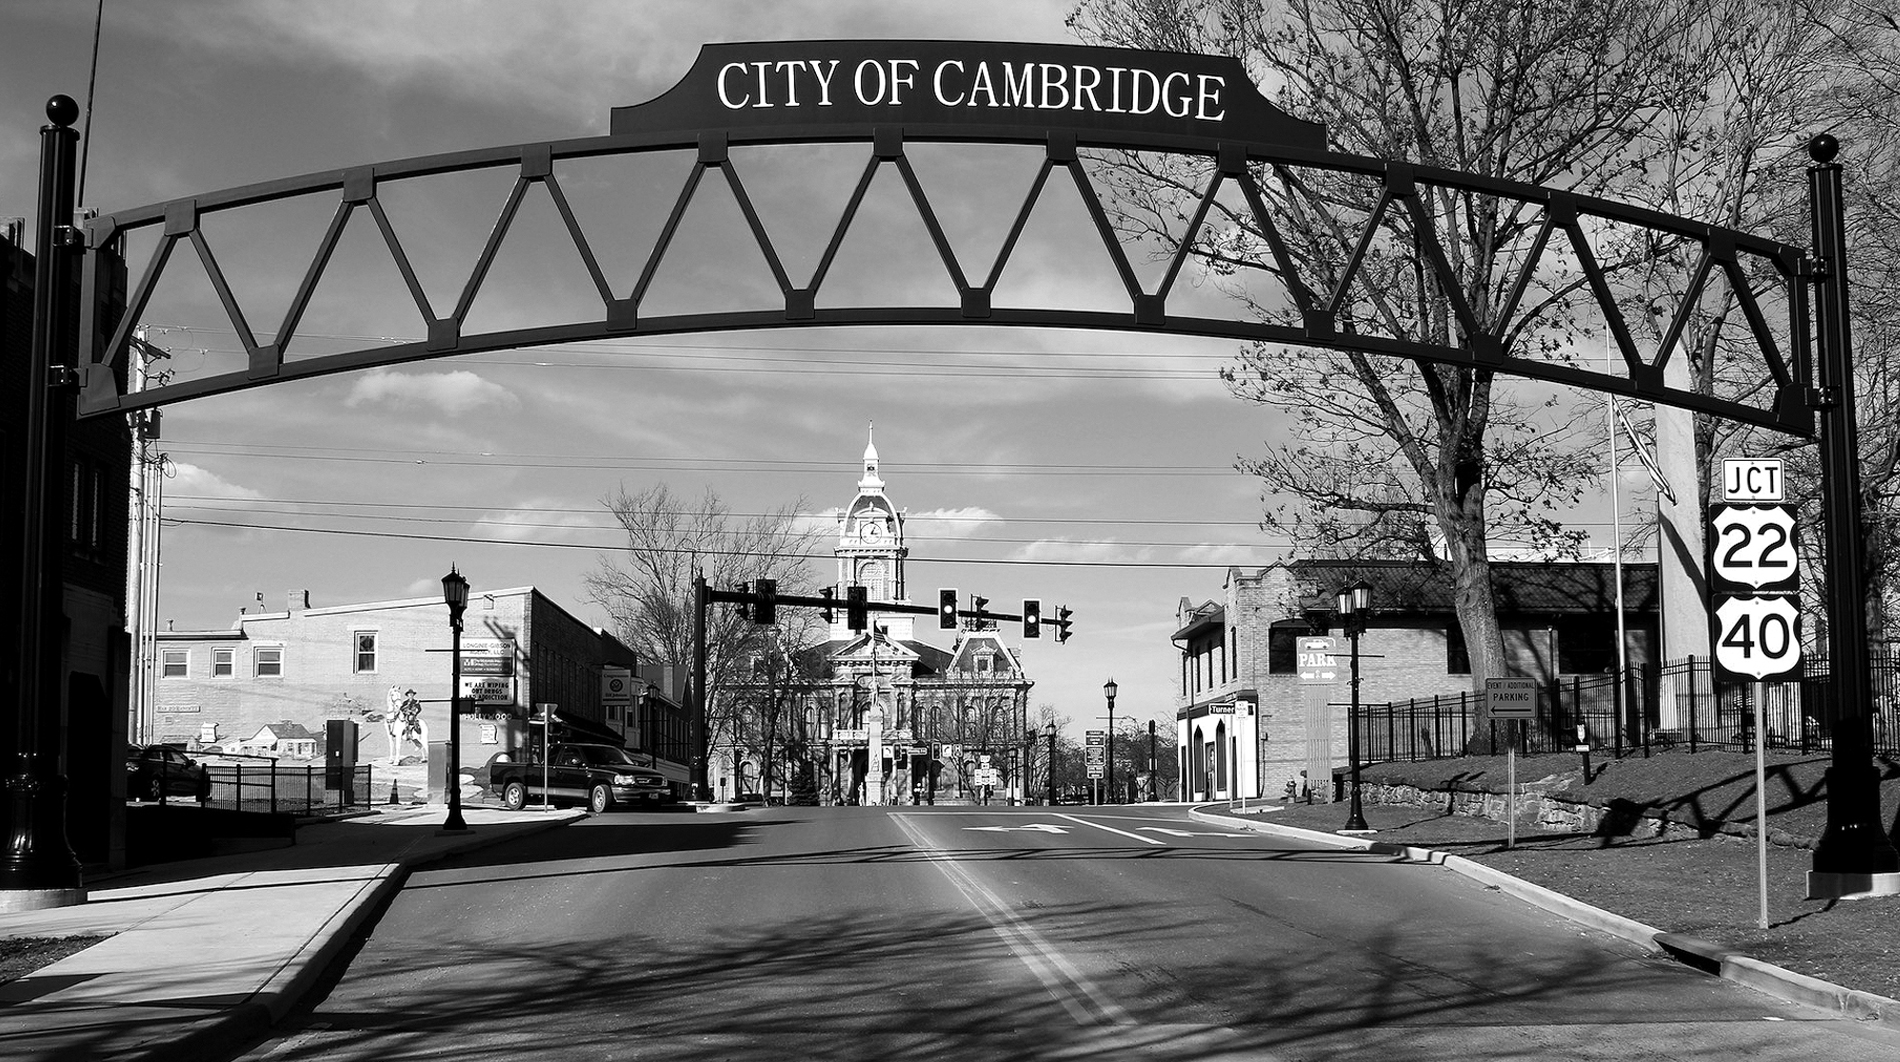 The entrance to the small town of Cambridge, a road leads up over a bride looking into this small town's historic distric. A church is seen in the distance.